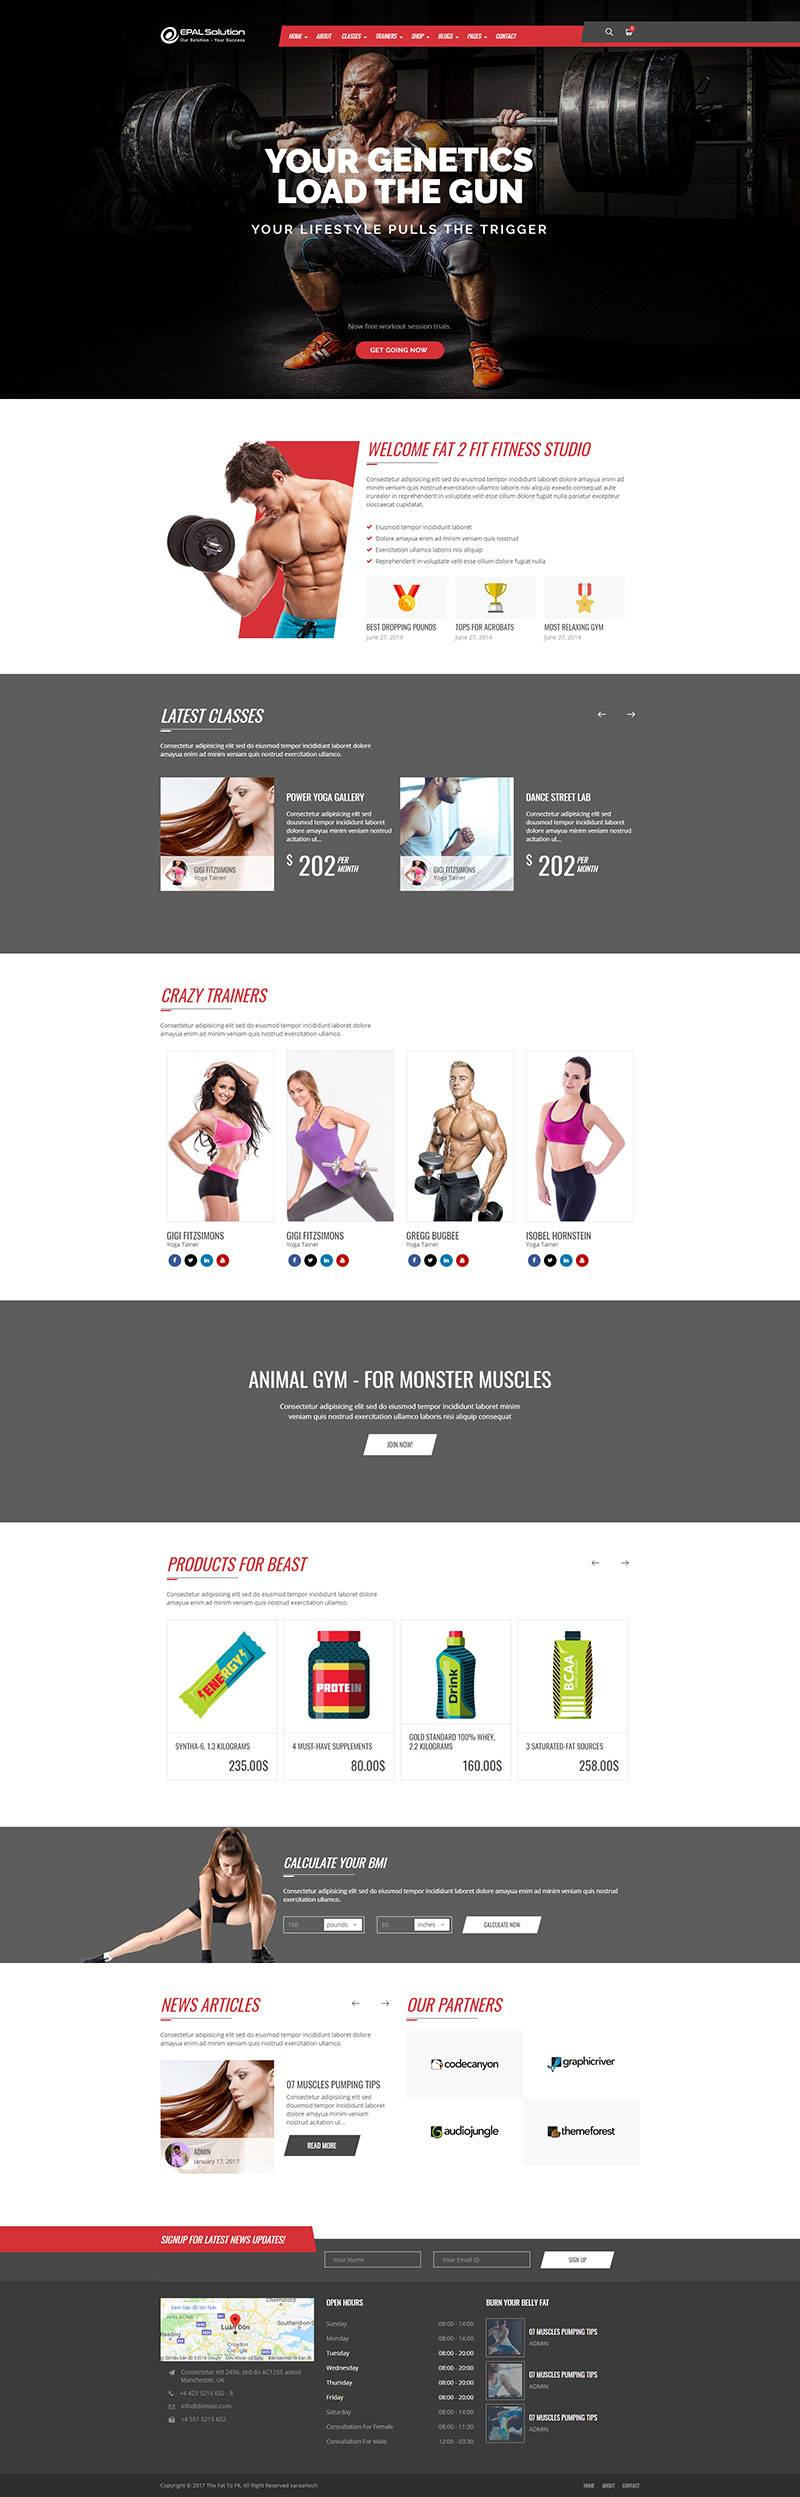 Giao-dien-website-game-gym-fit